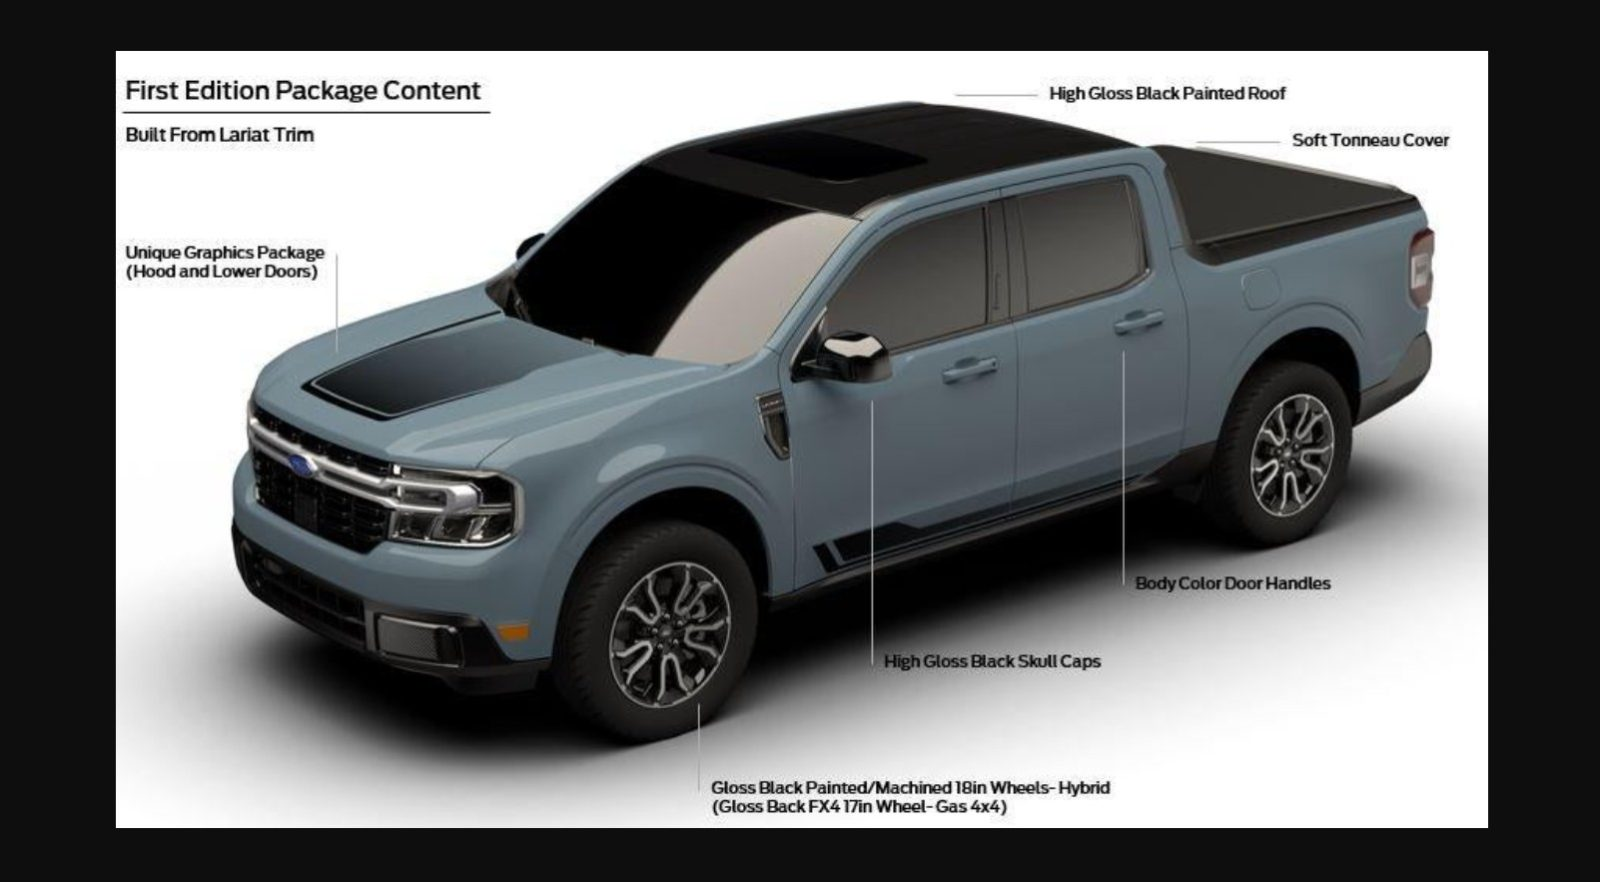 highlights-info-graph-shows-all-2022-ford-maverick-first-edition-details-at-once